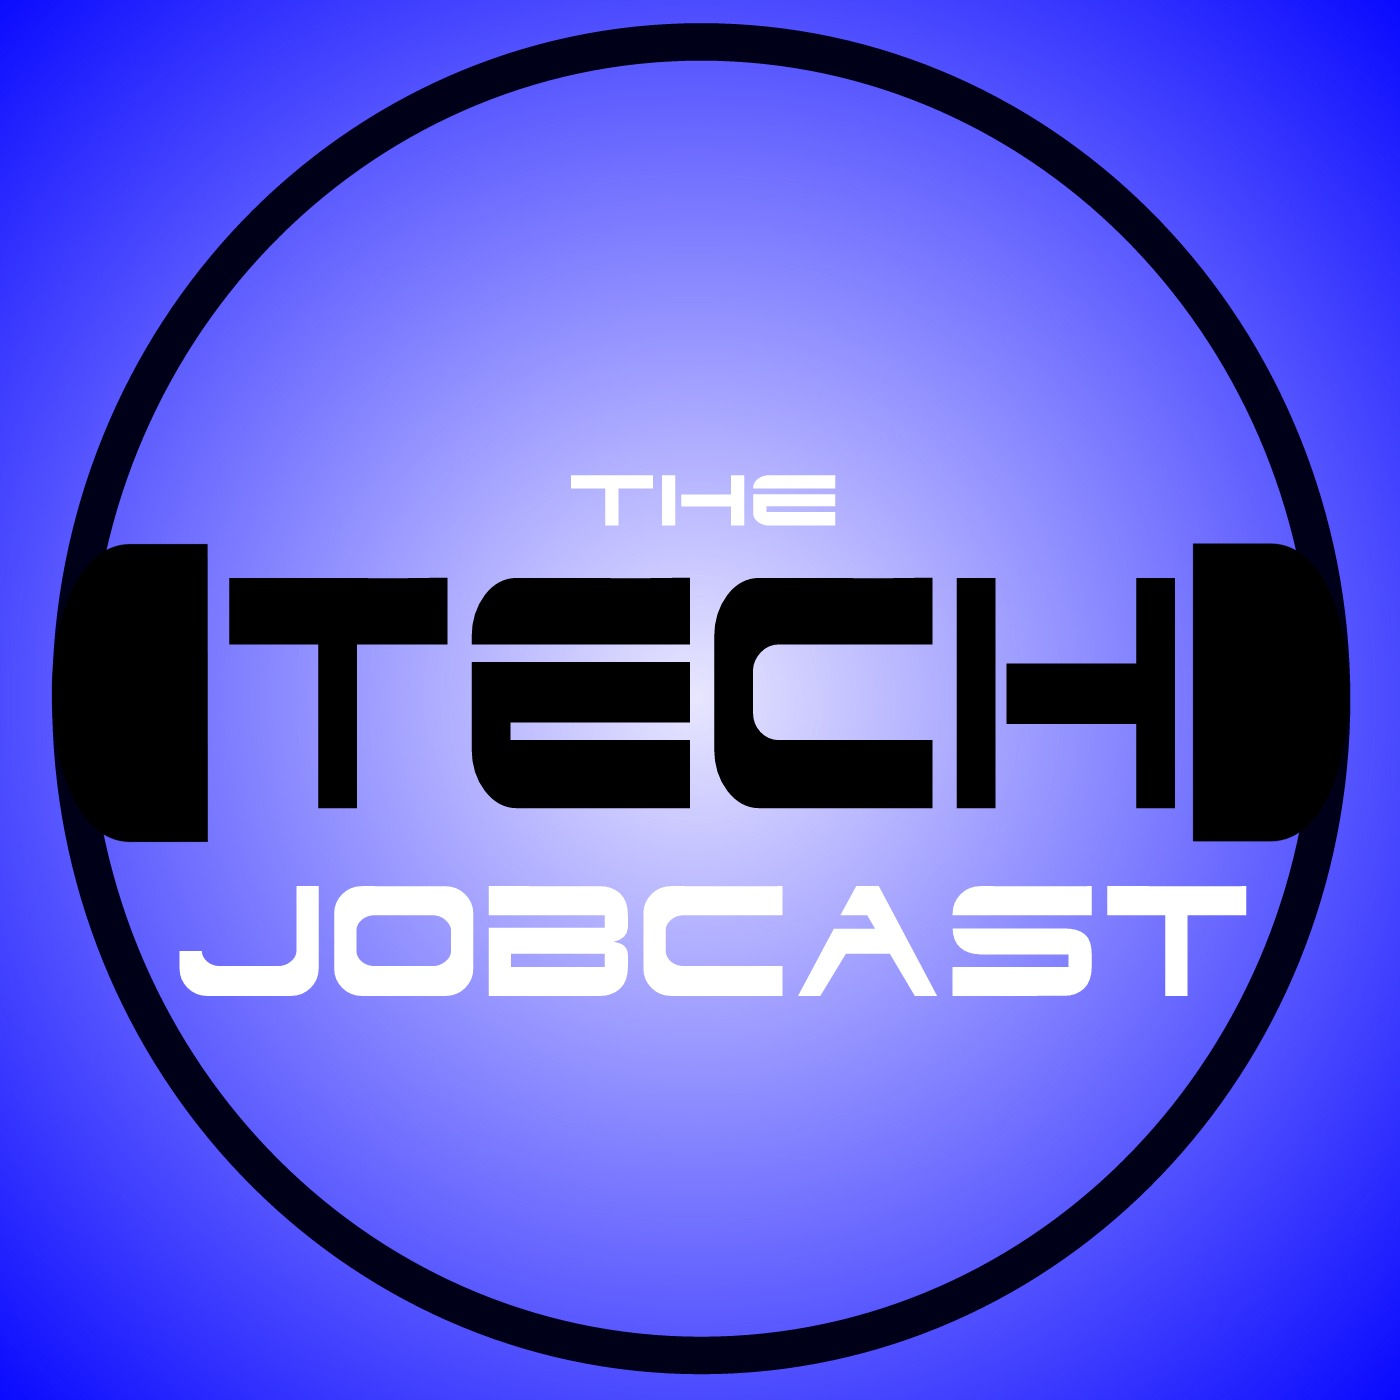 IT Job listings for the week of June 24, 2018